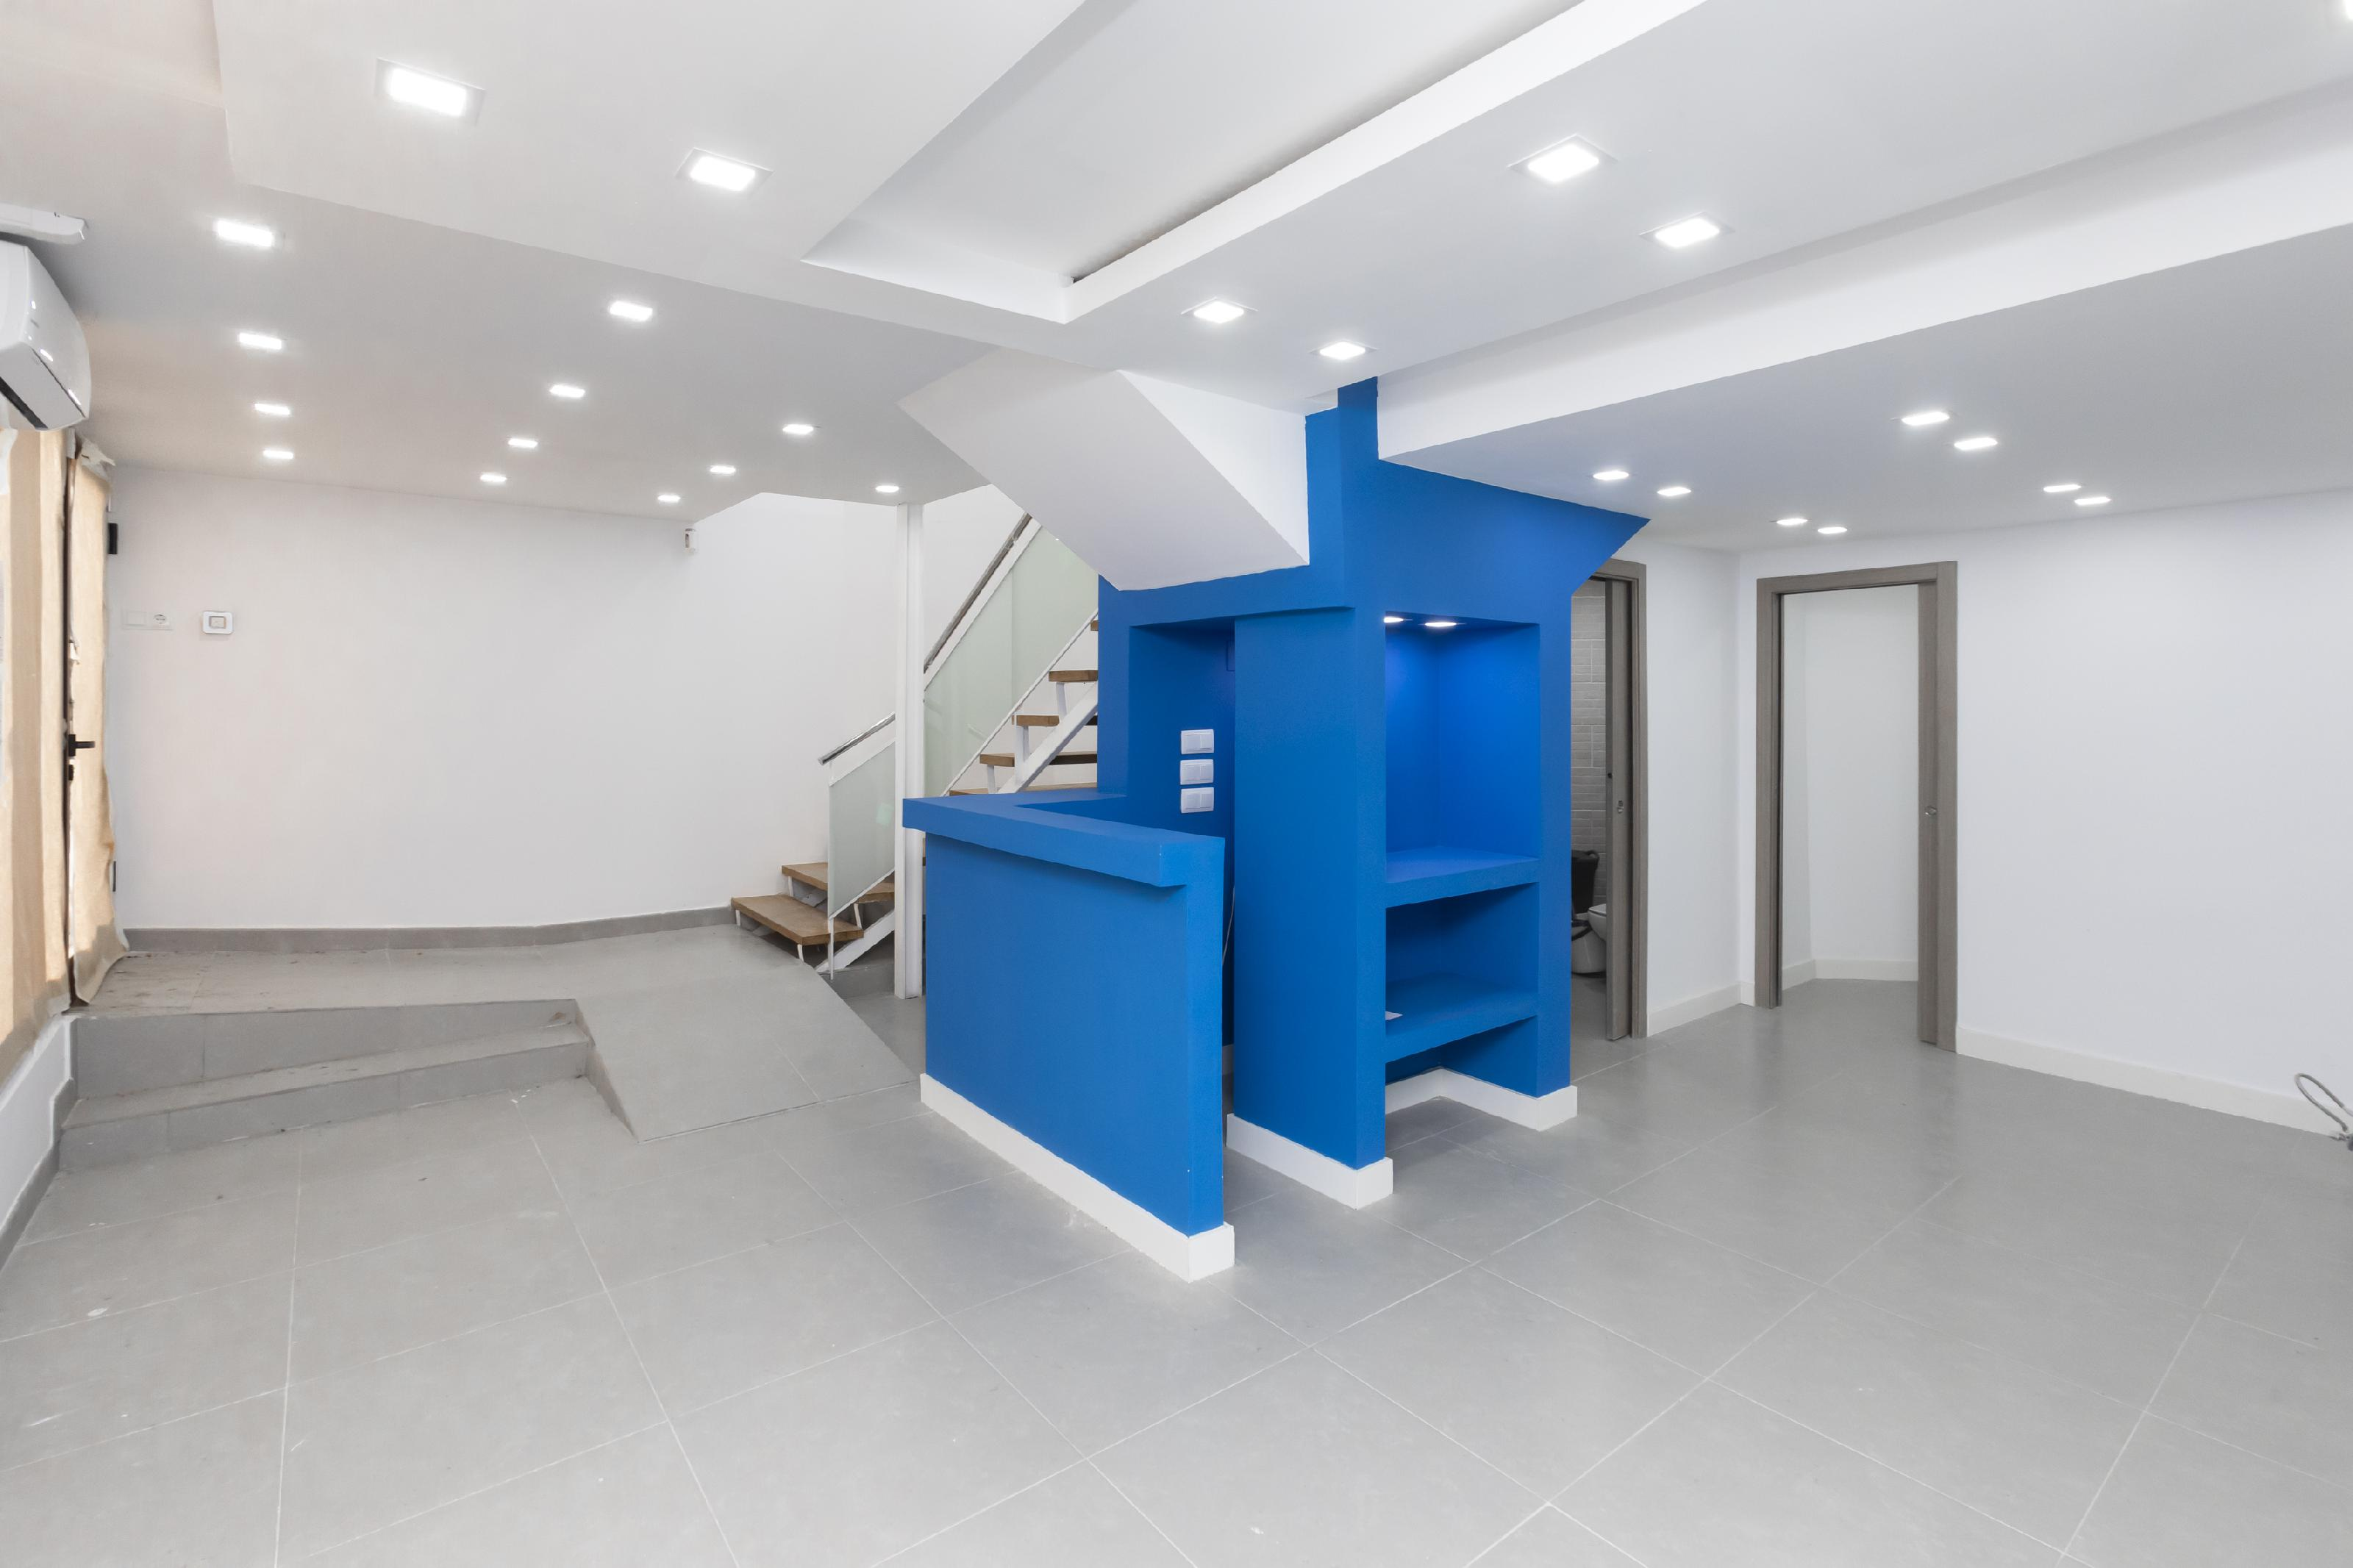 242978 Flat for sale in Gràcia, Camp Grassot and Gràcia Nova 7